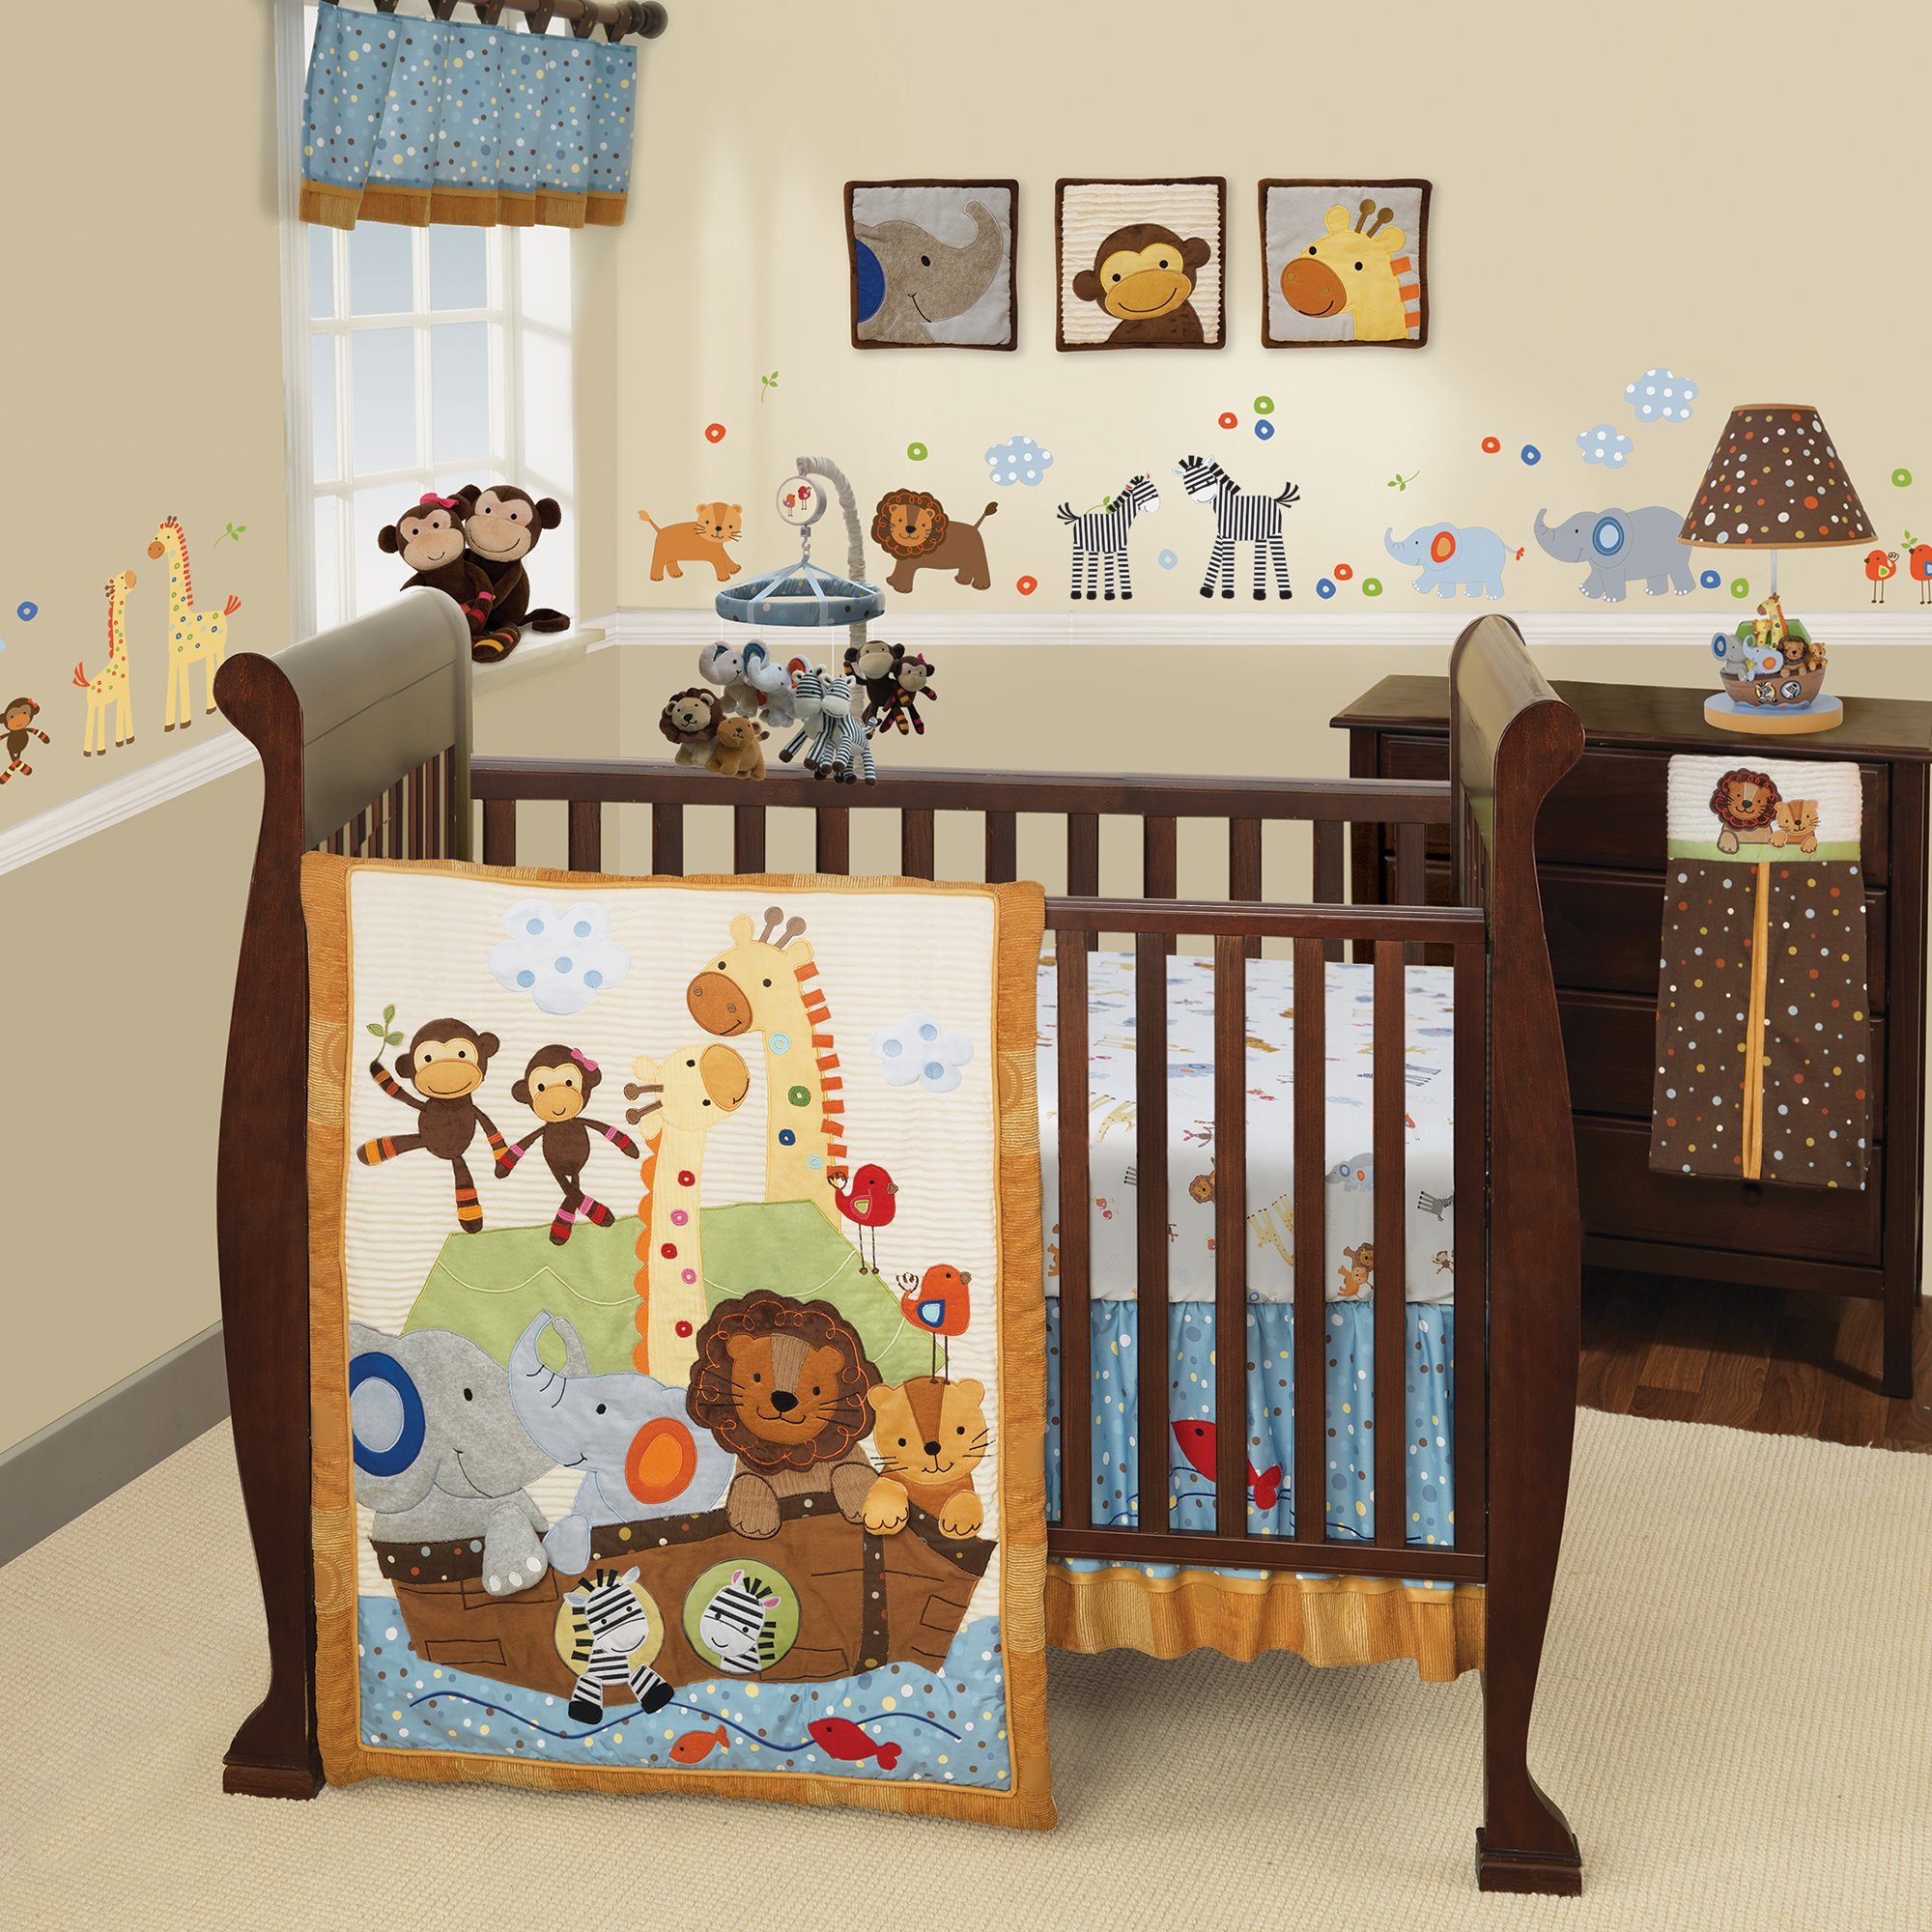 Lambs & Ivy S.S. Noah 9-Piece Nursery to Go Crib Bedding Set - Blue, Brown